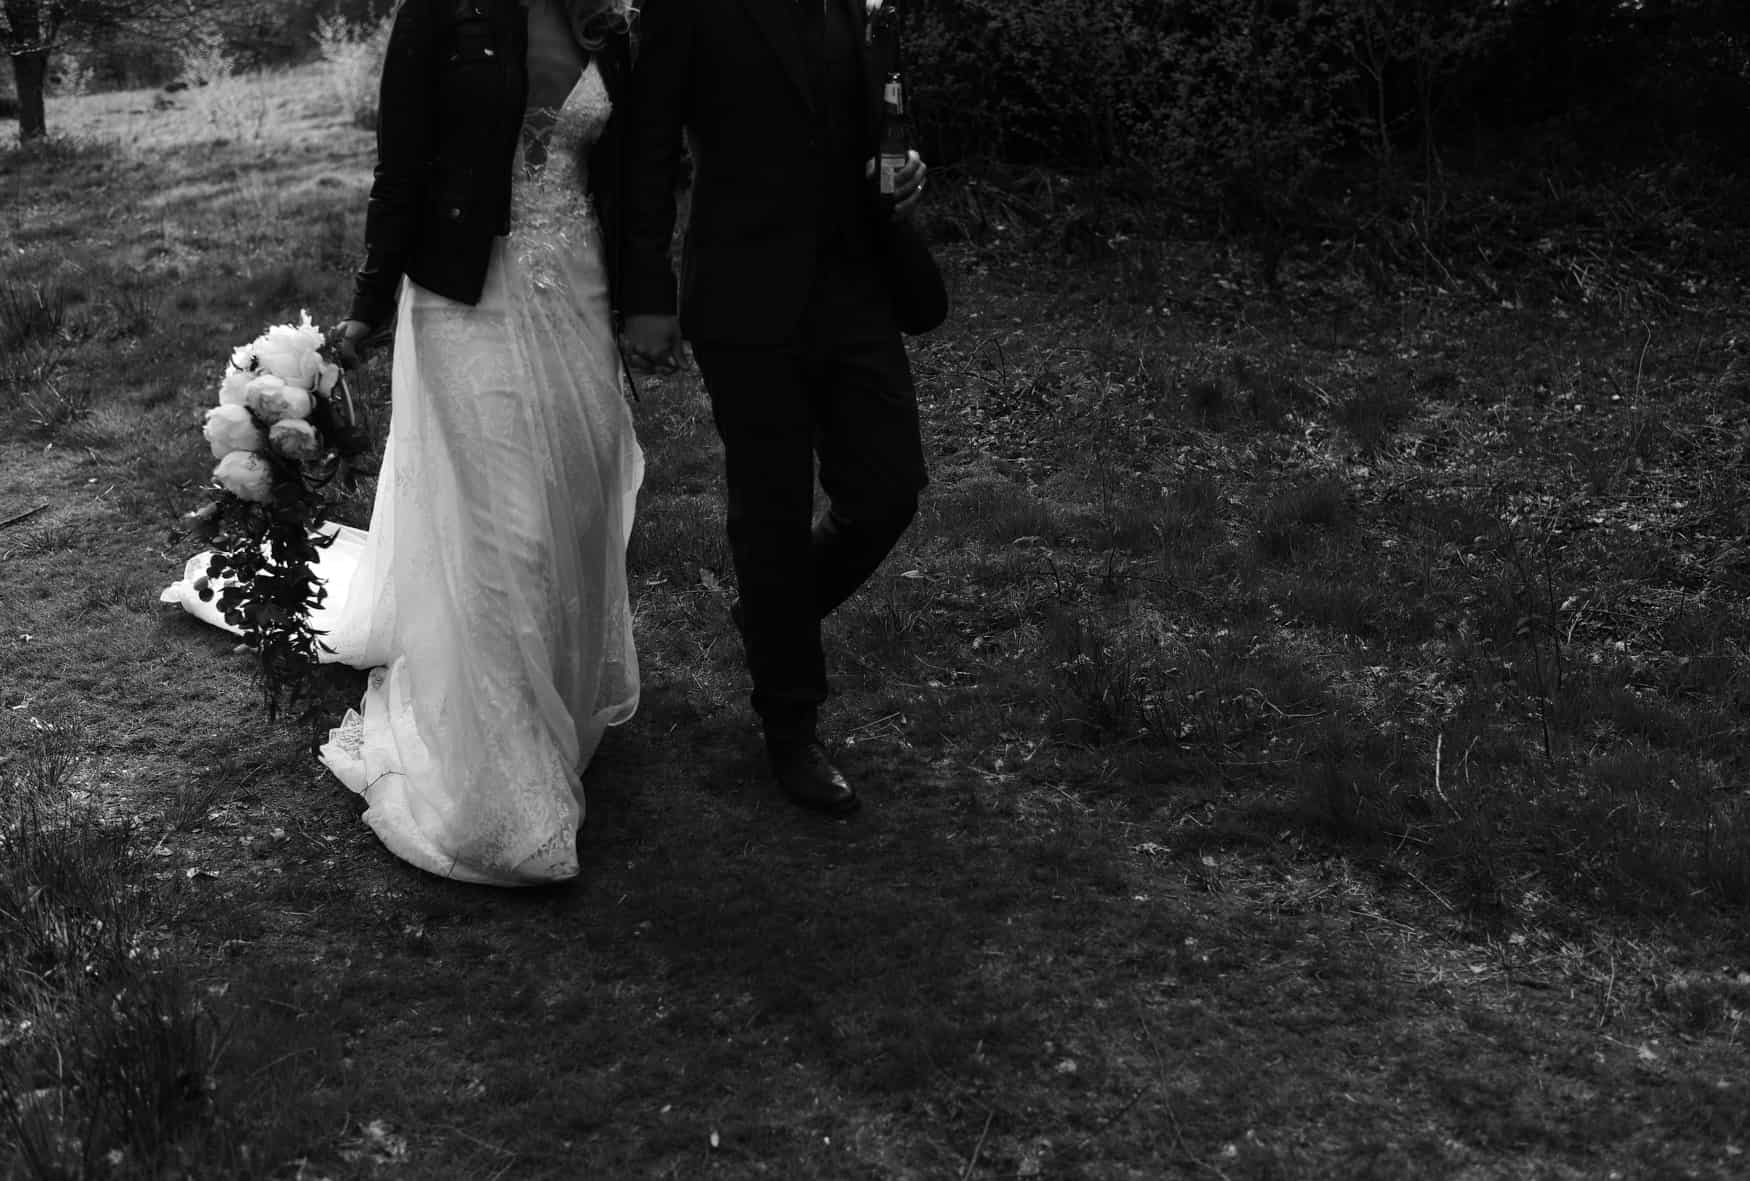 bride and groom walking in a field